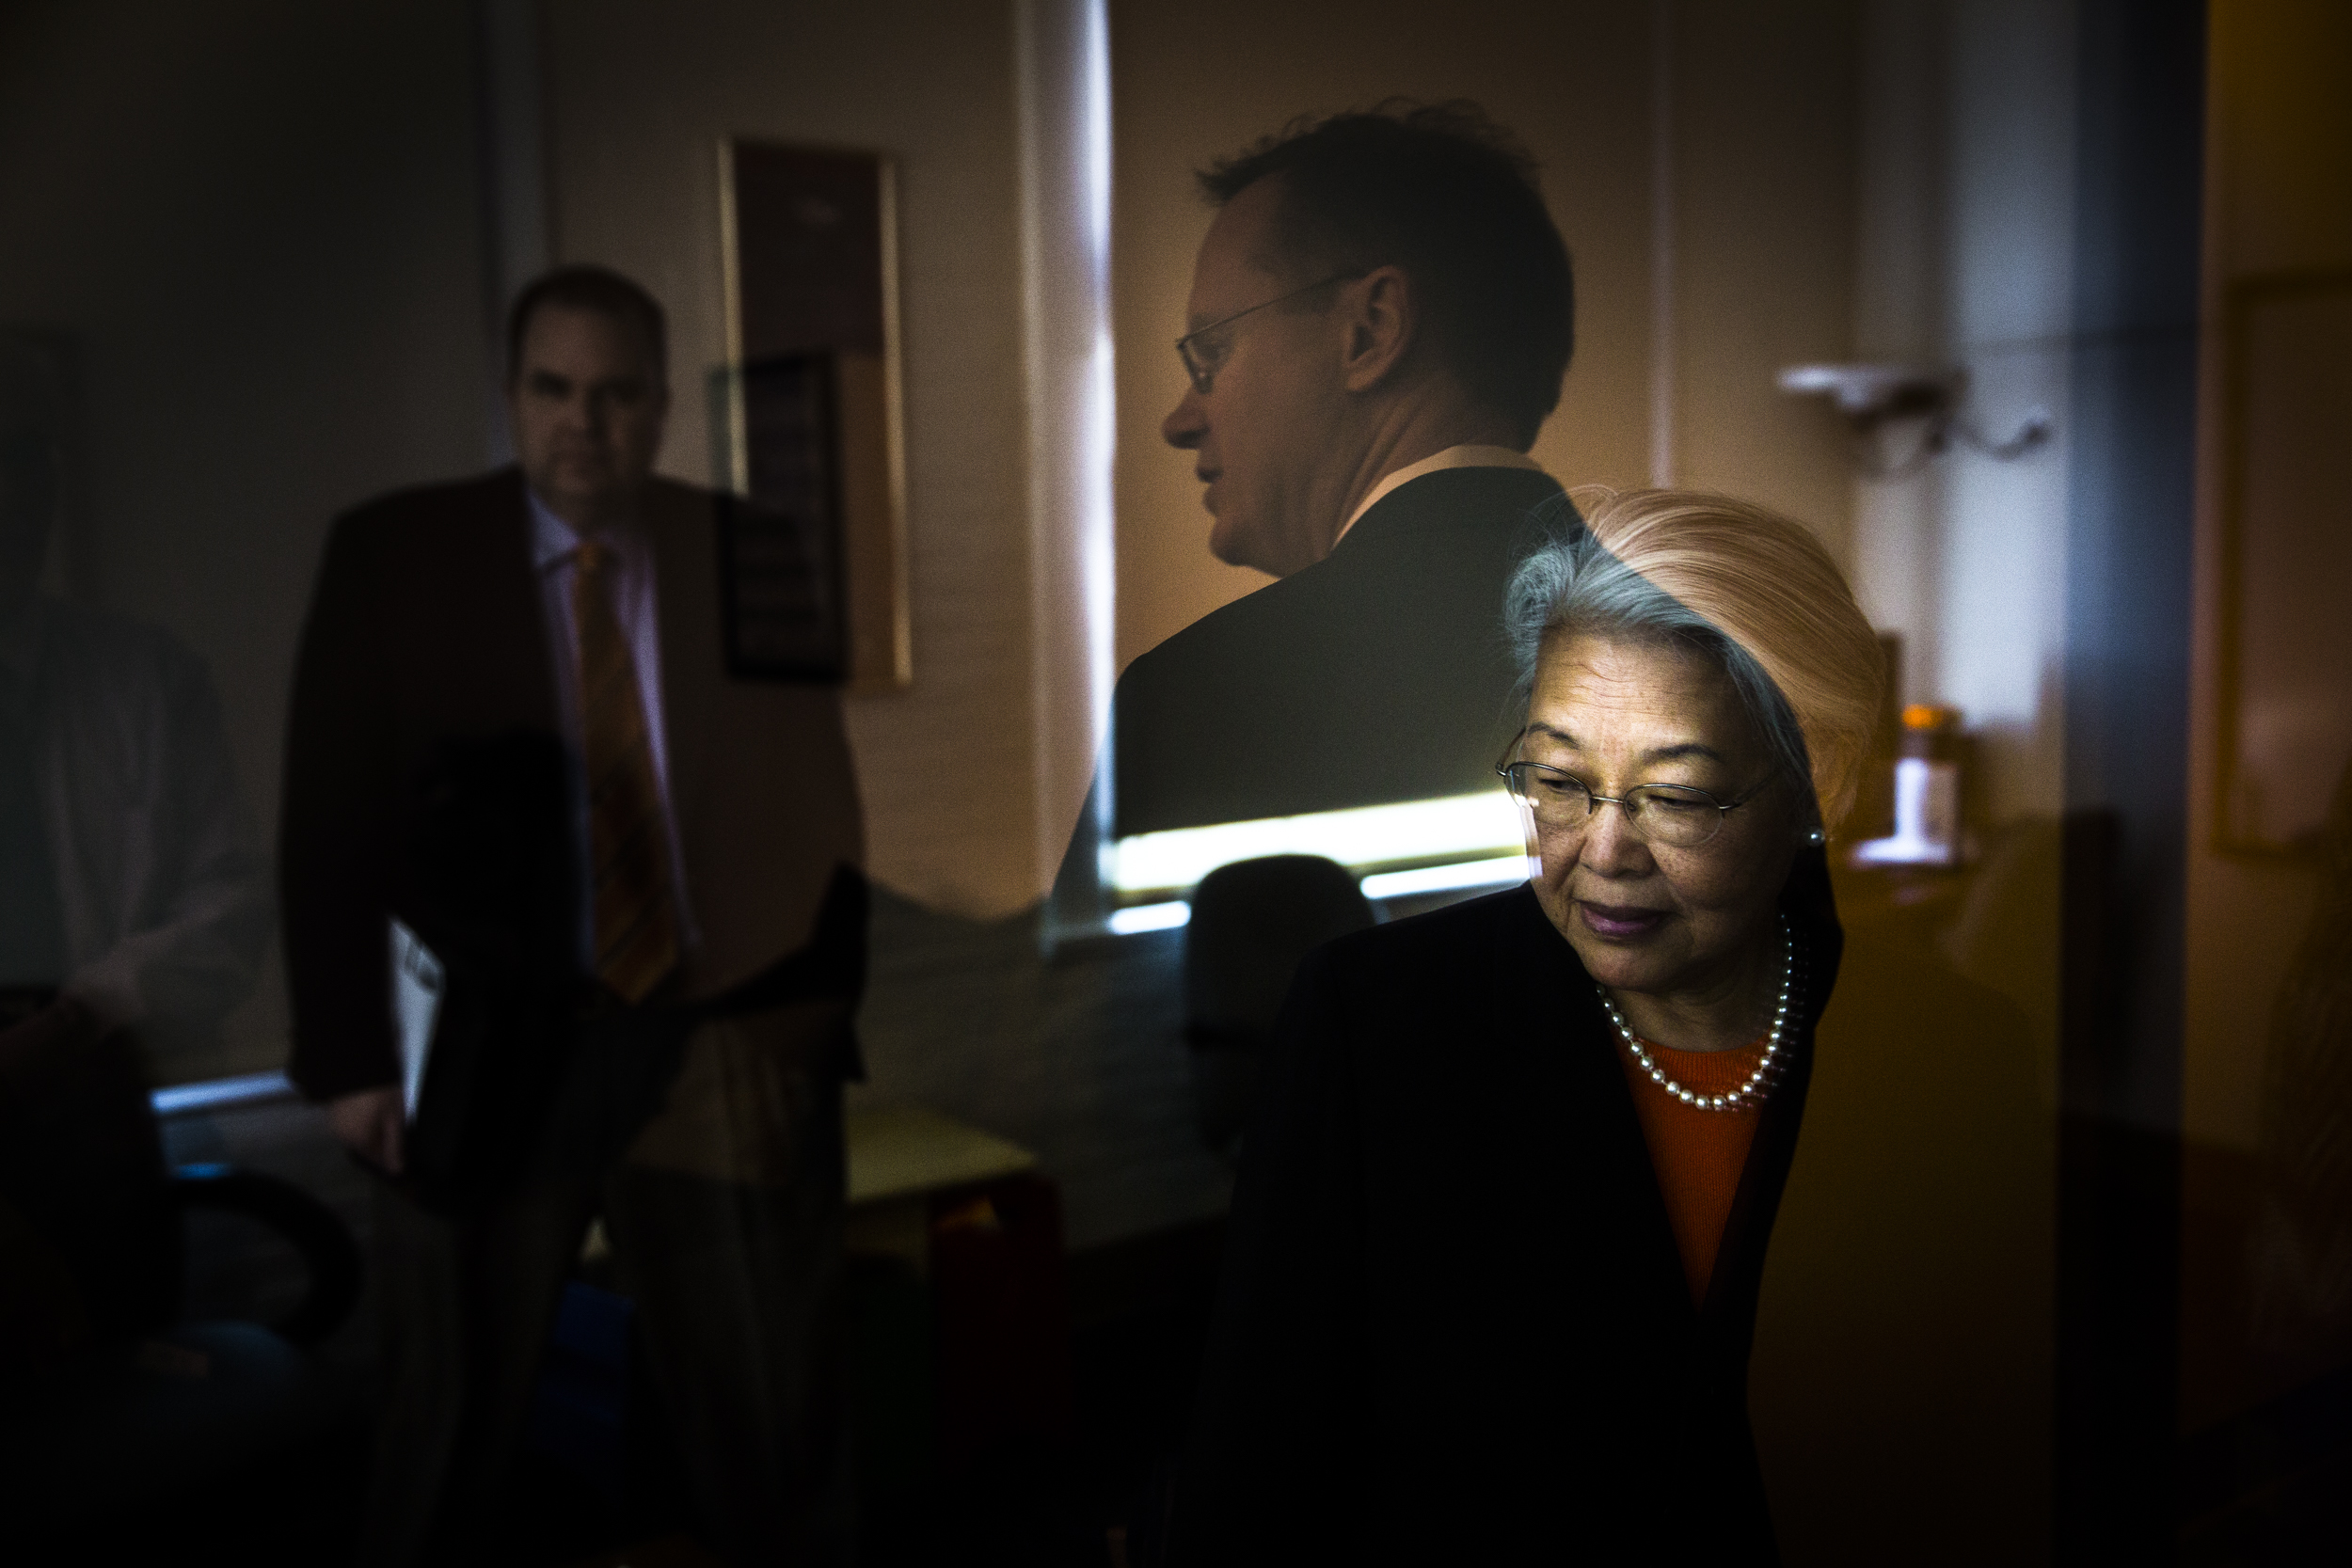 Ruth Chen, the wife of Syracuse University's Chancellor Kent Syverud, looks around a counseling room while Syverud tours an observation room on the opposite side of a two way mirror. The two were being given a tour of Peck Hall, home to the Marriage and Family Therapy program in the David B. Falk College of Sport and Human Dynamics.